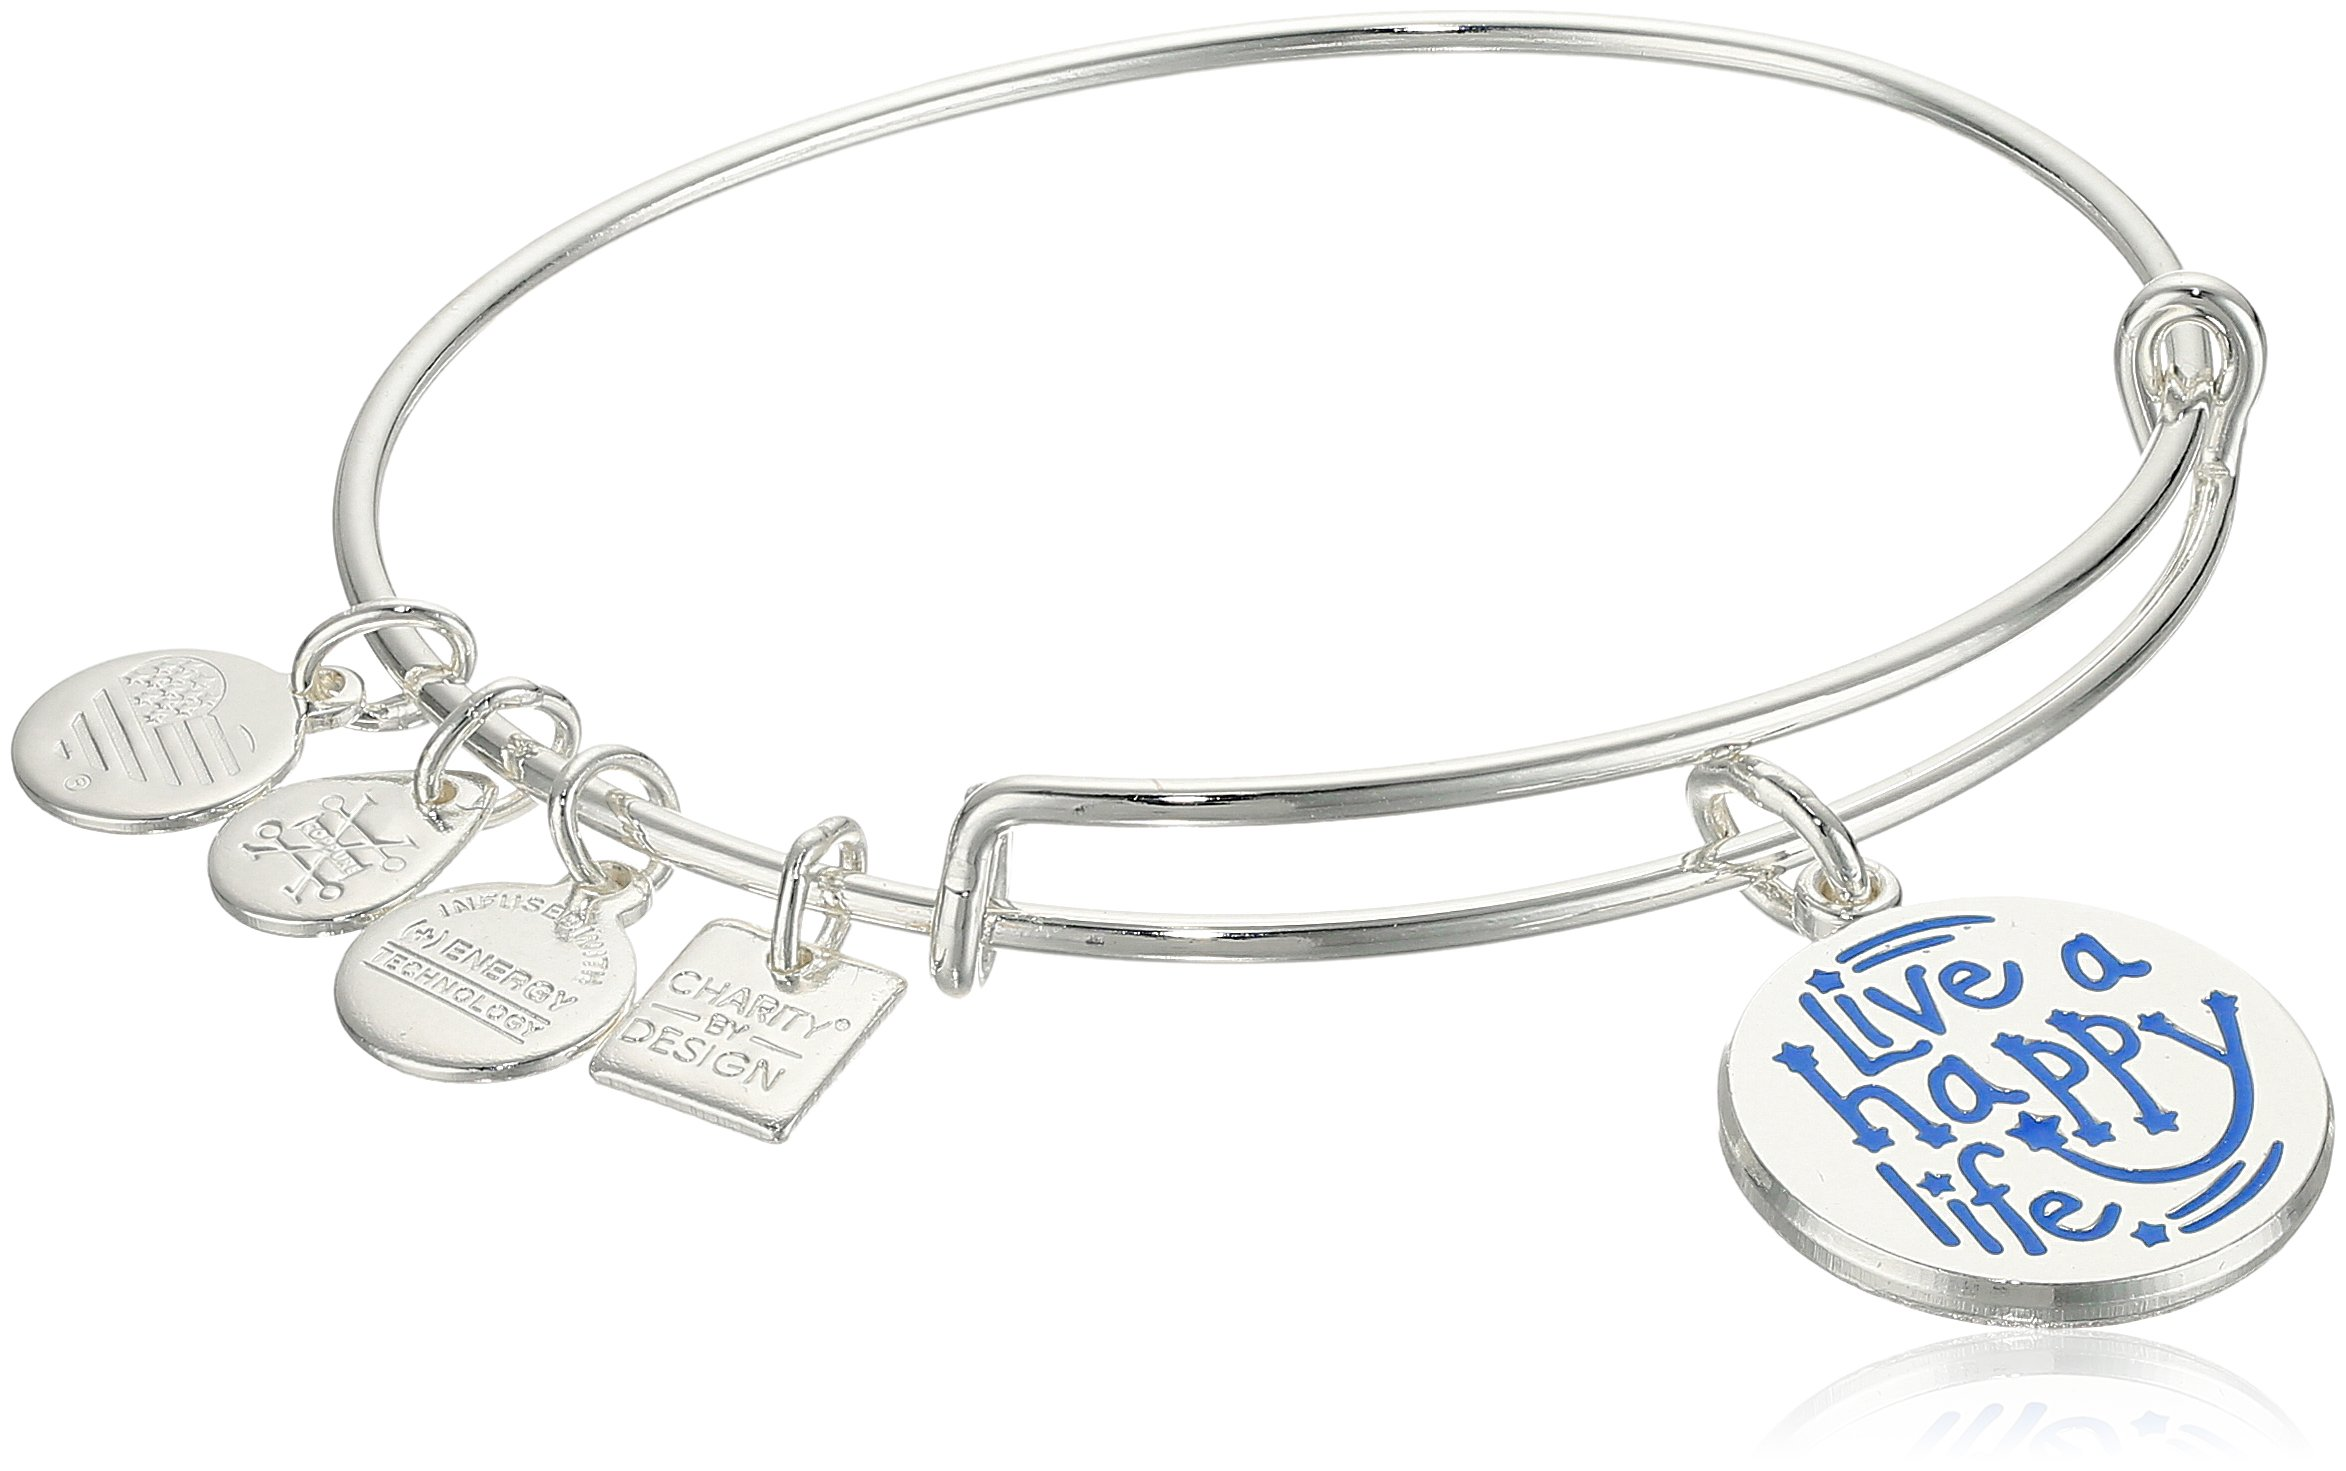 Alex and Ani Charity By Design, Live a Happy Life Shiny Silver Bangle Bracelet